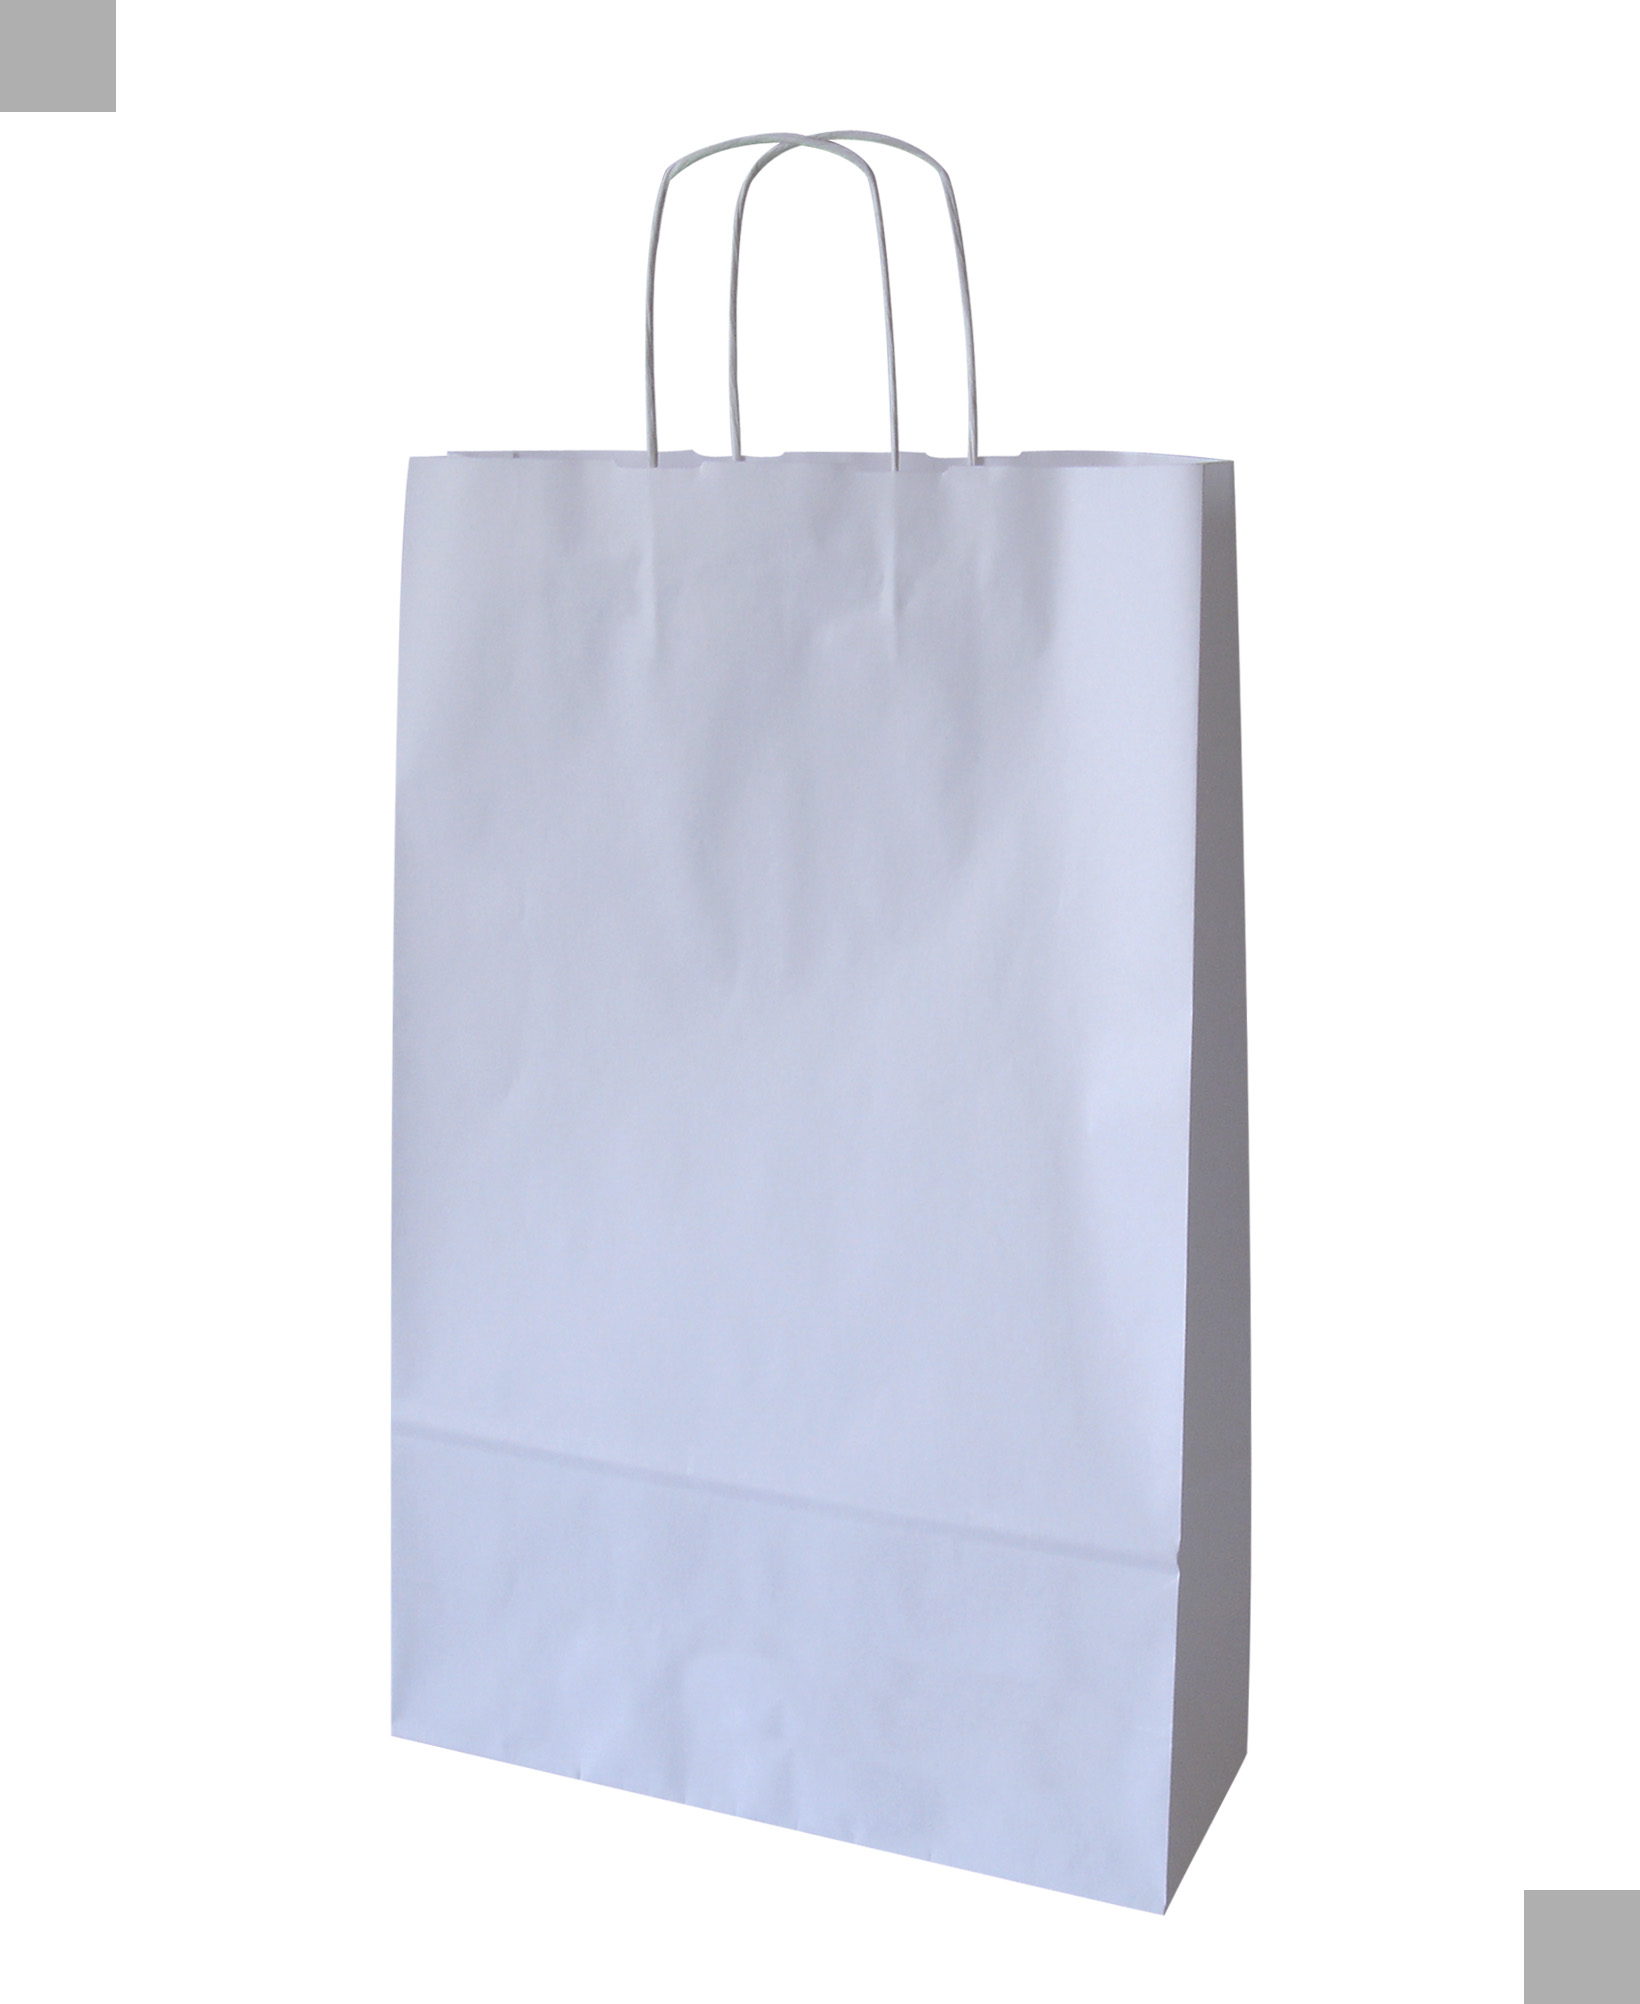 In Bags Company Images White Paper Bag